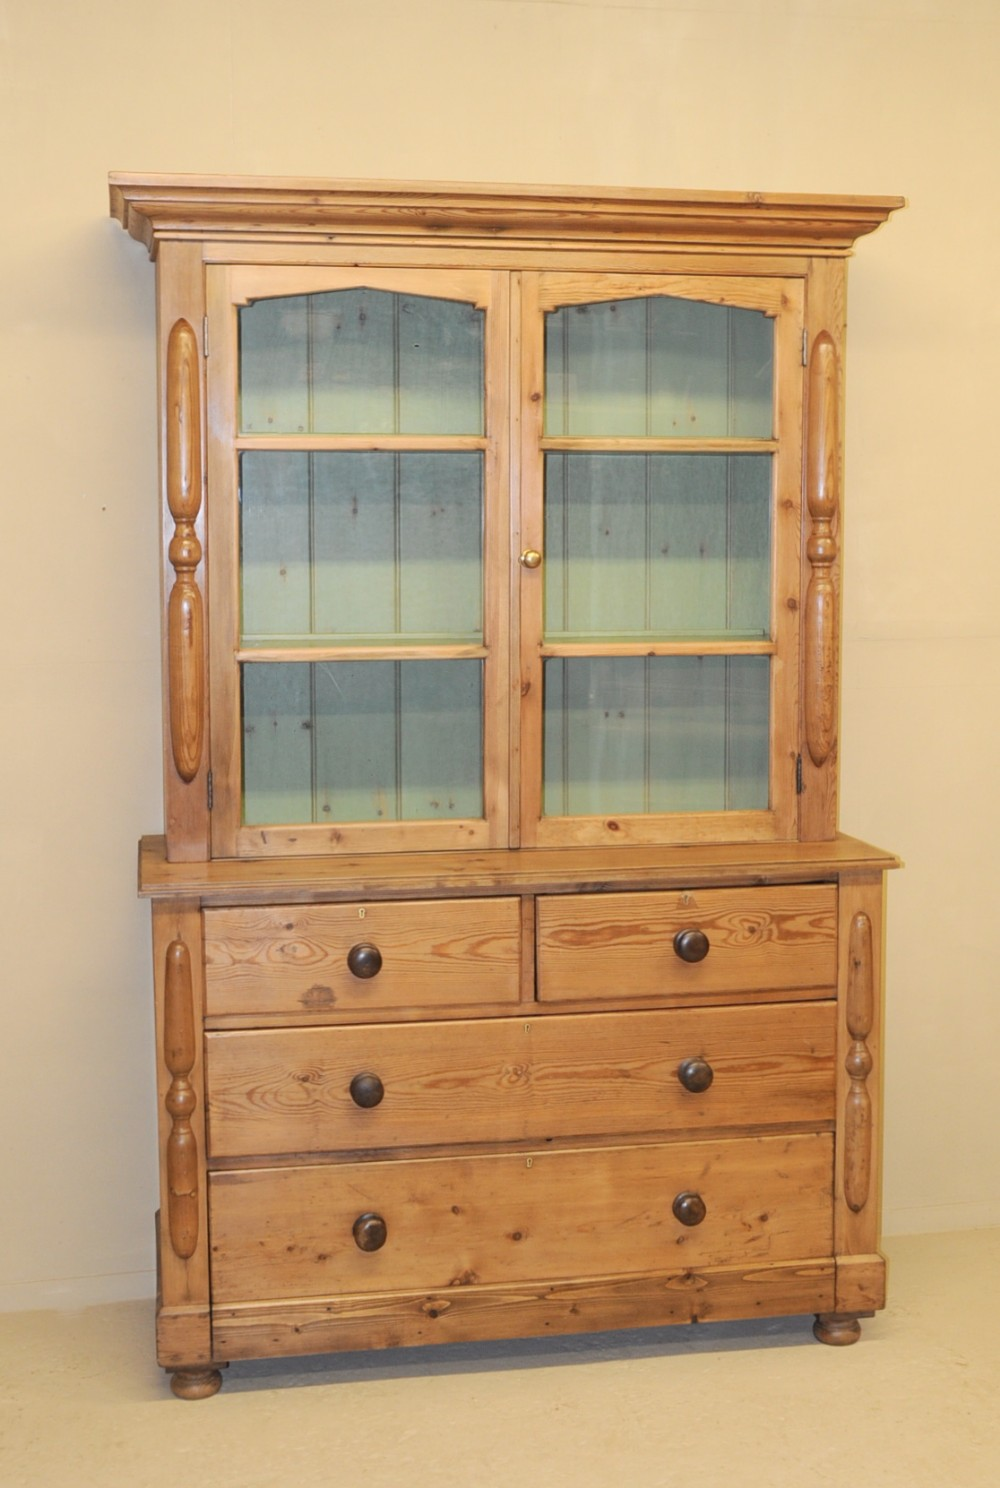 Kitchen Dresser Antique Pine Kitchen Dresser 263410 Sellingantiquescouk